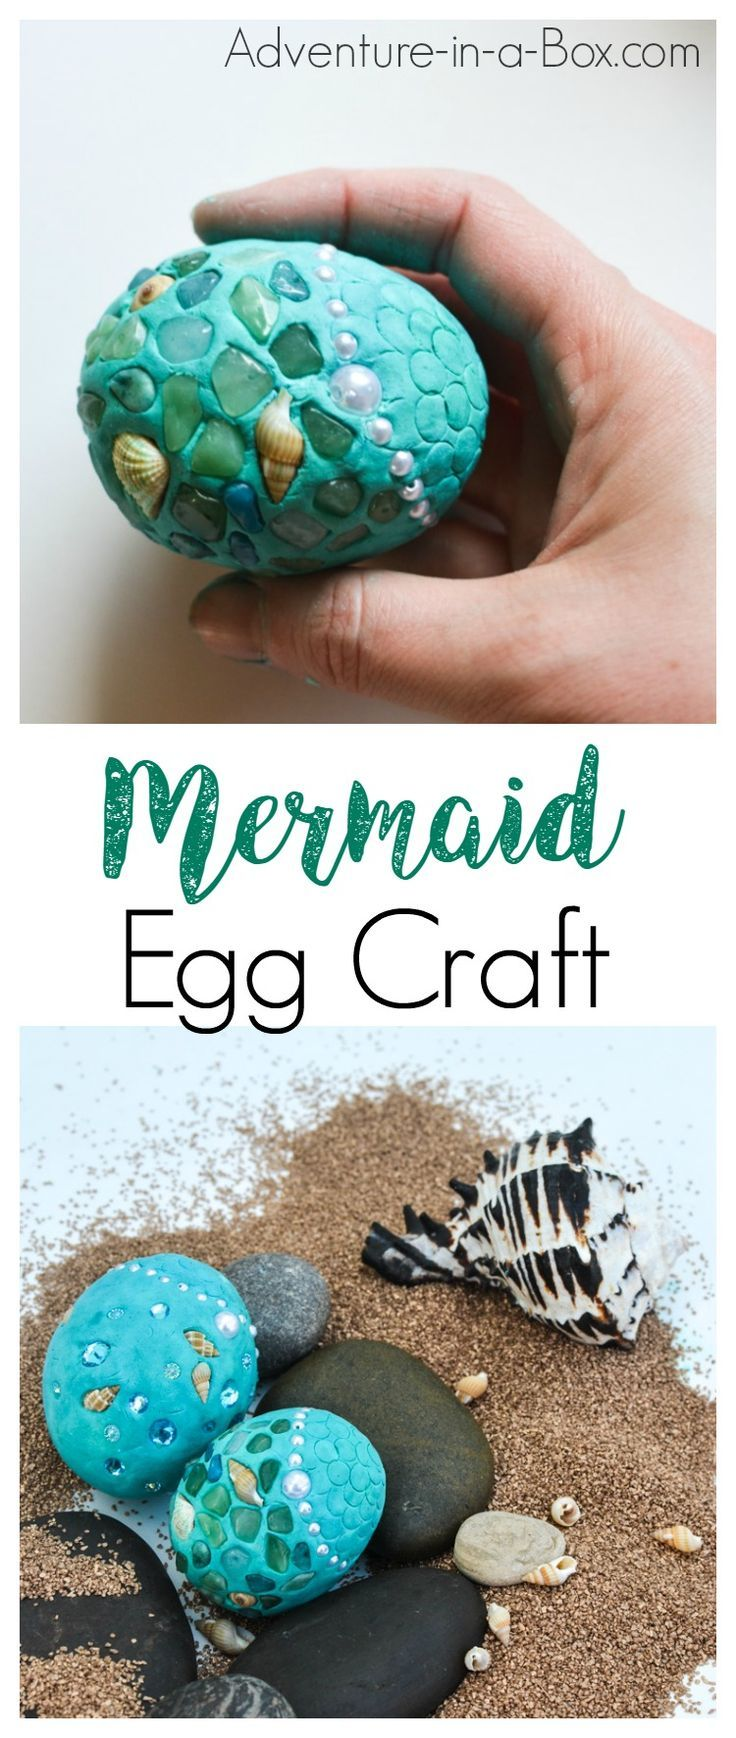 For all the mermaid fans, try this mermaid egg summer craft! Made of shells and beach glass, this craft is a good way to use up all the keepsakes from a seaside trip in a little fantasy-inspired creation.